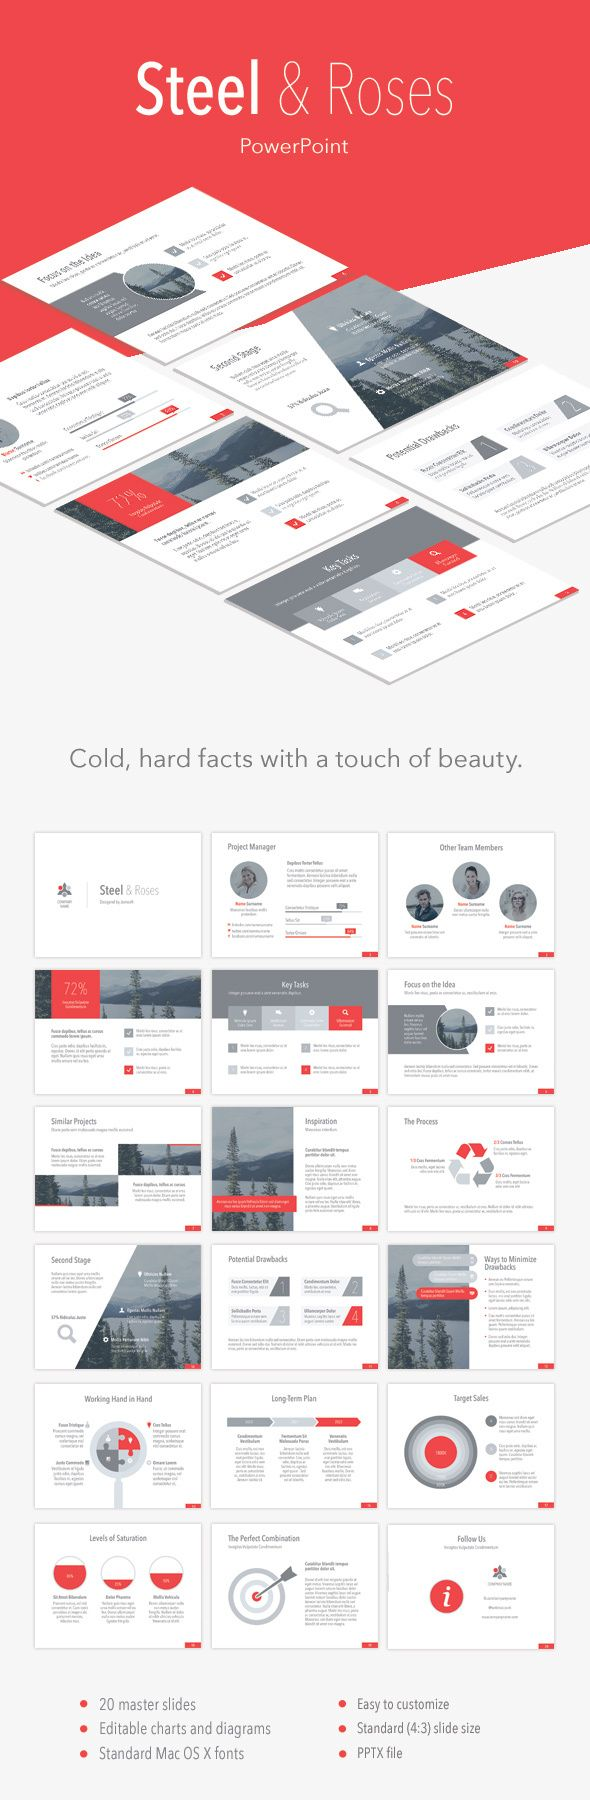 223 best powerpoint images on pinterest ppt design presentation steel roses powerpoint template powerpoint templates toneelgroepblik Images